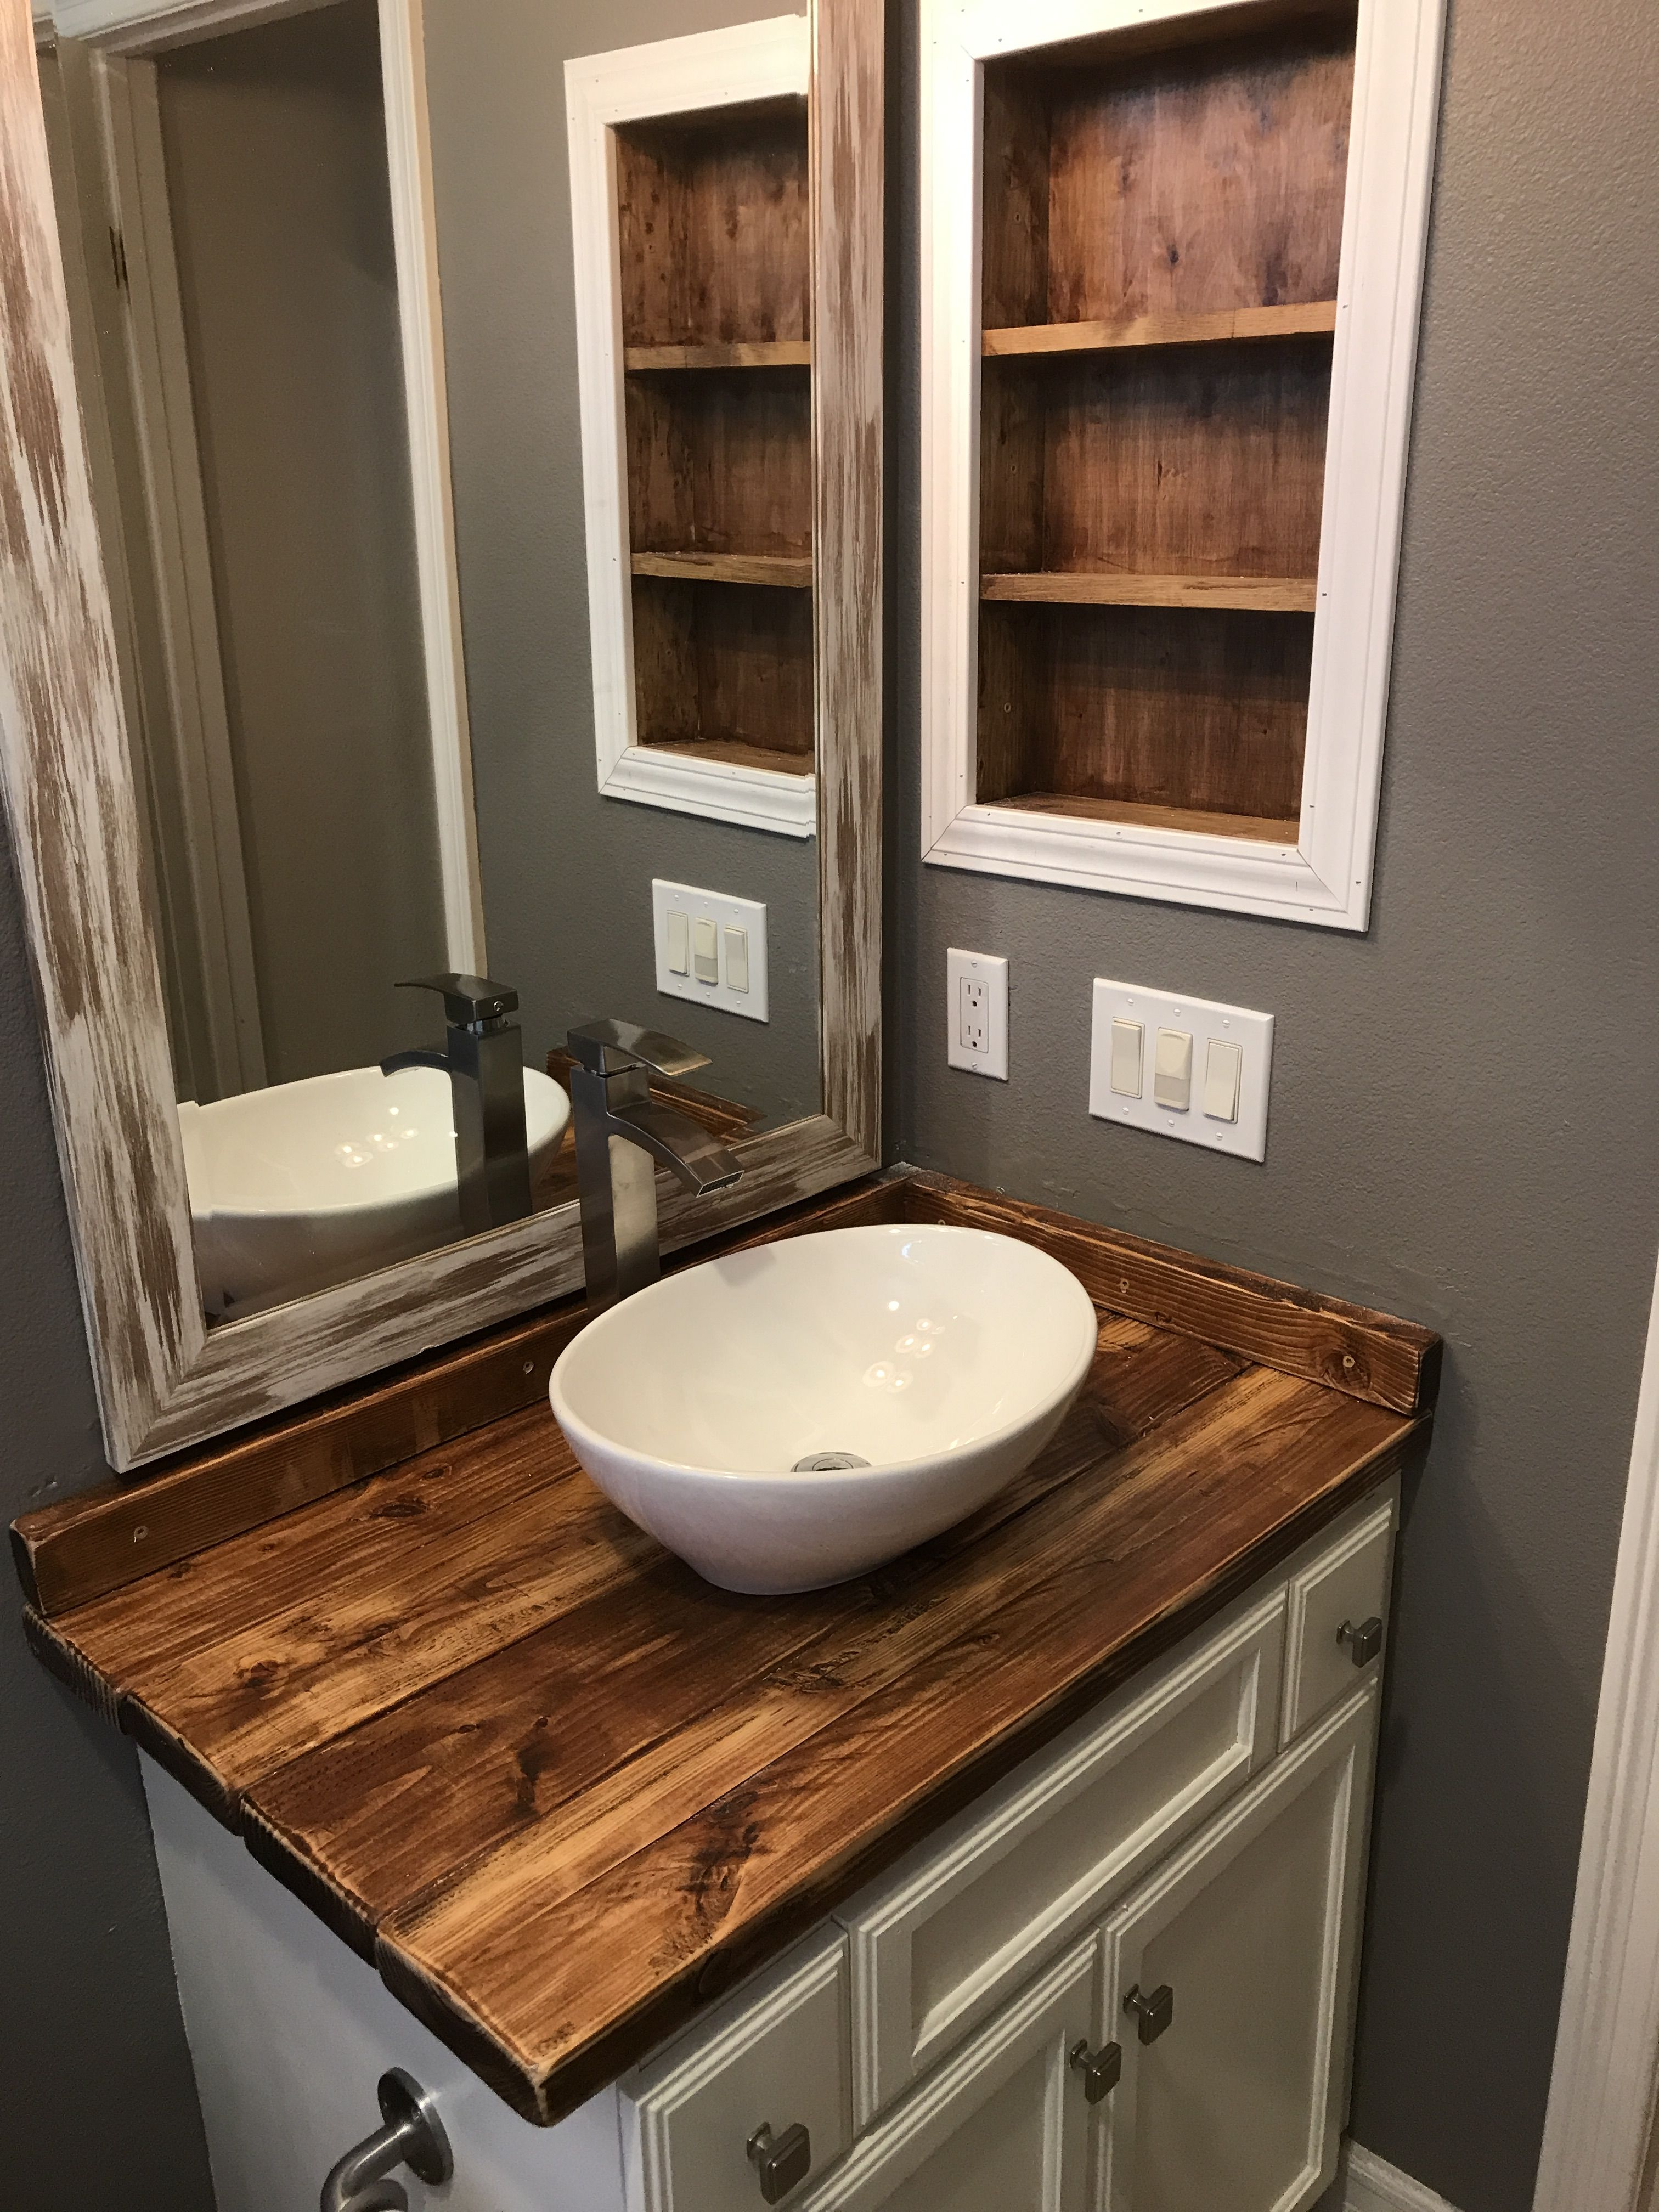 Exceptional Diy Rustic Wood Countertop And Vessel Sink. Bathroom Makeover. #bathroom  #rustic